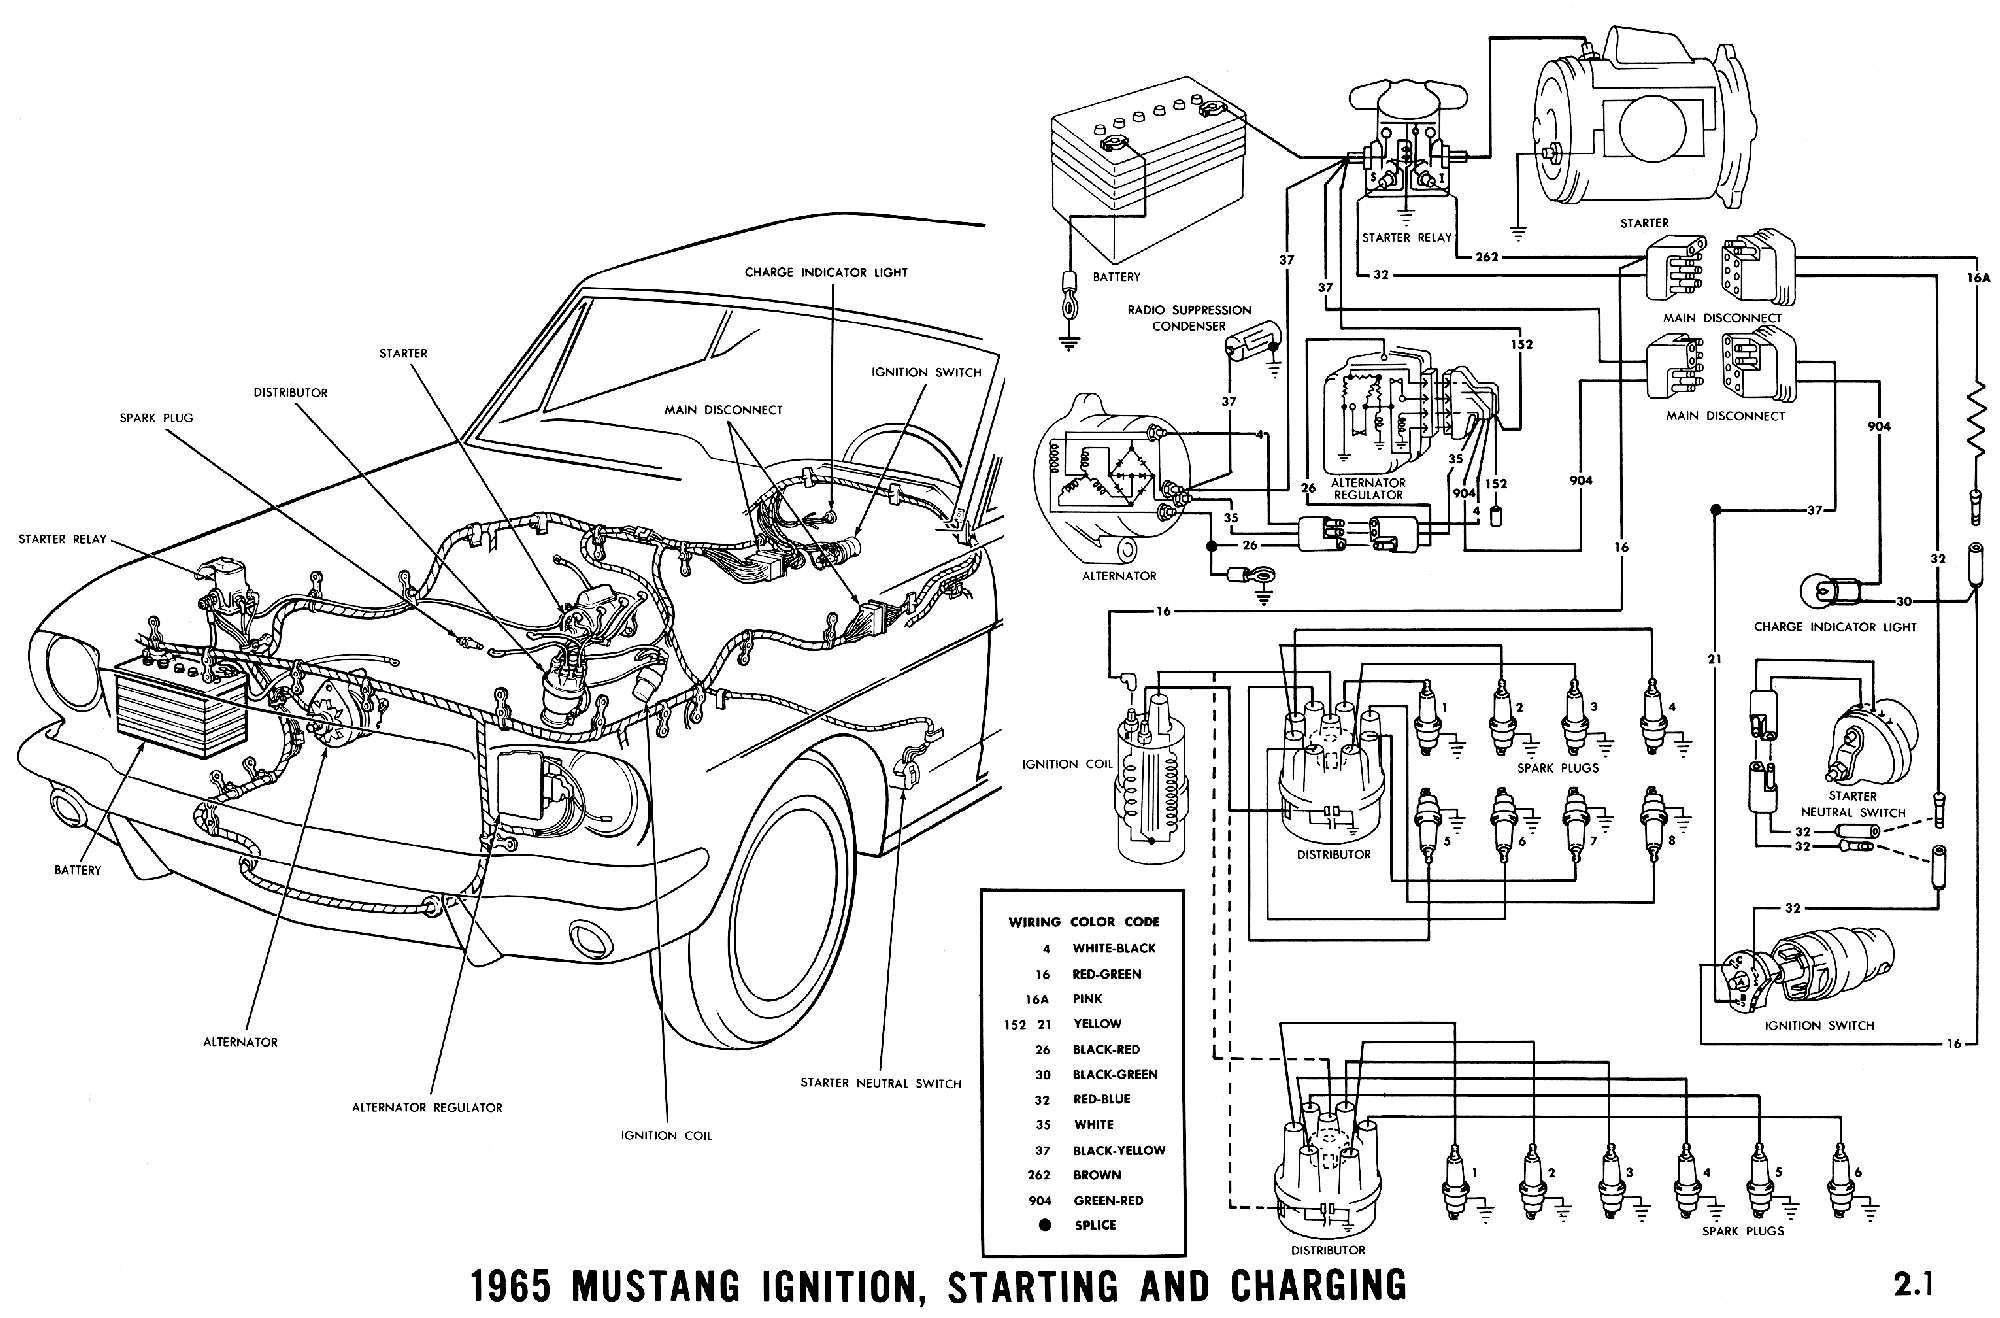 Basic Car Engine Diagram 2015 Mustang Engine Diagram Engine Car Parts and Ponent Diagram Of Basic Car Engine Diagram